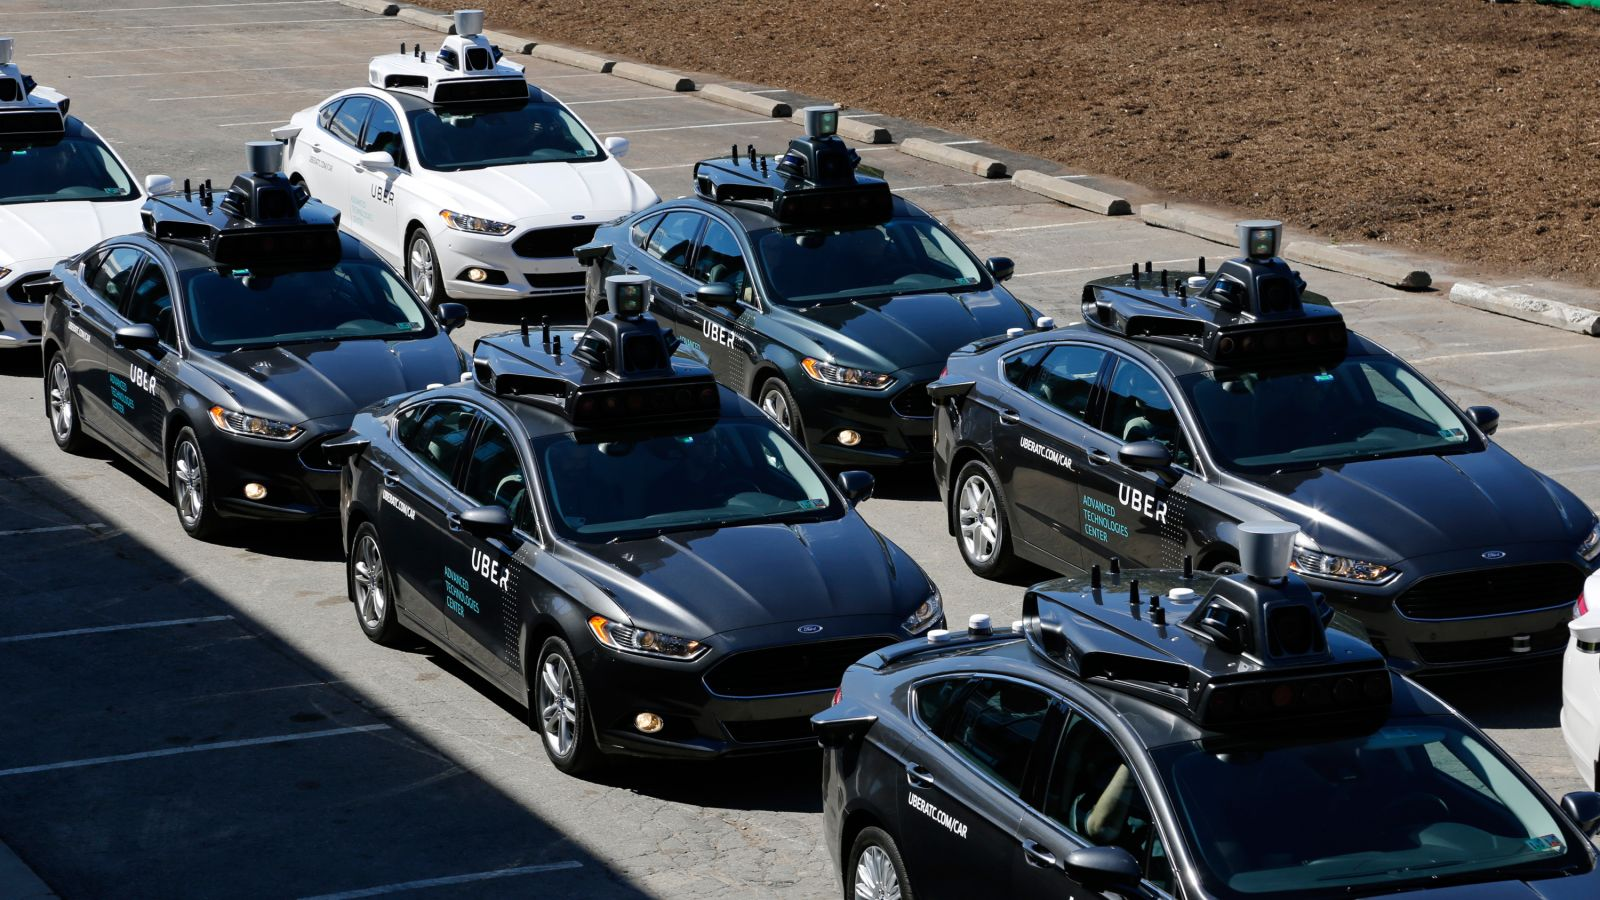 A group of self driving Uber vehicles position themselves to take journalists on rides during a media preview at Uber's Advanced Technologies Center in Pittsburgh, Monday, Sept. 12, 2016. (AP Photo/Gene J. Puskar)